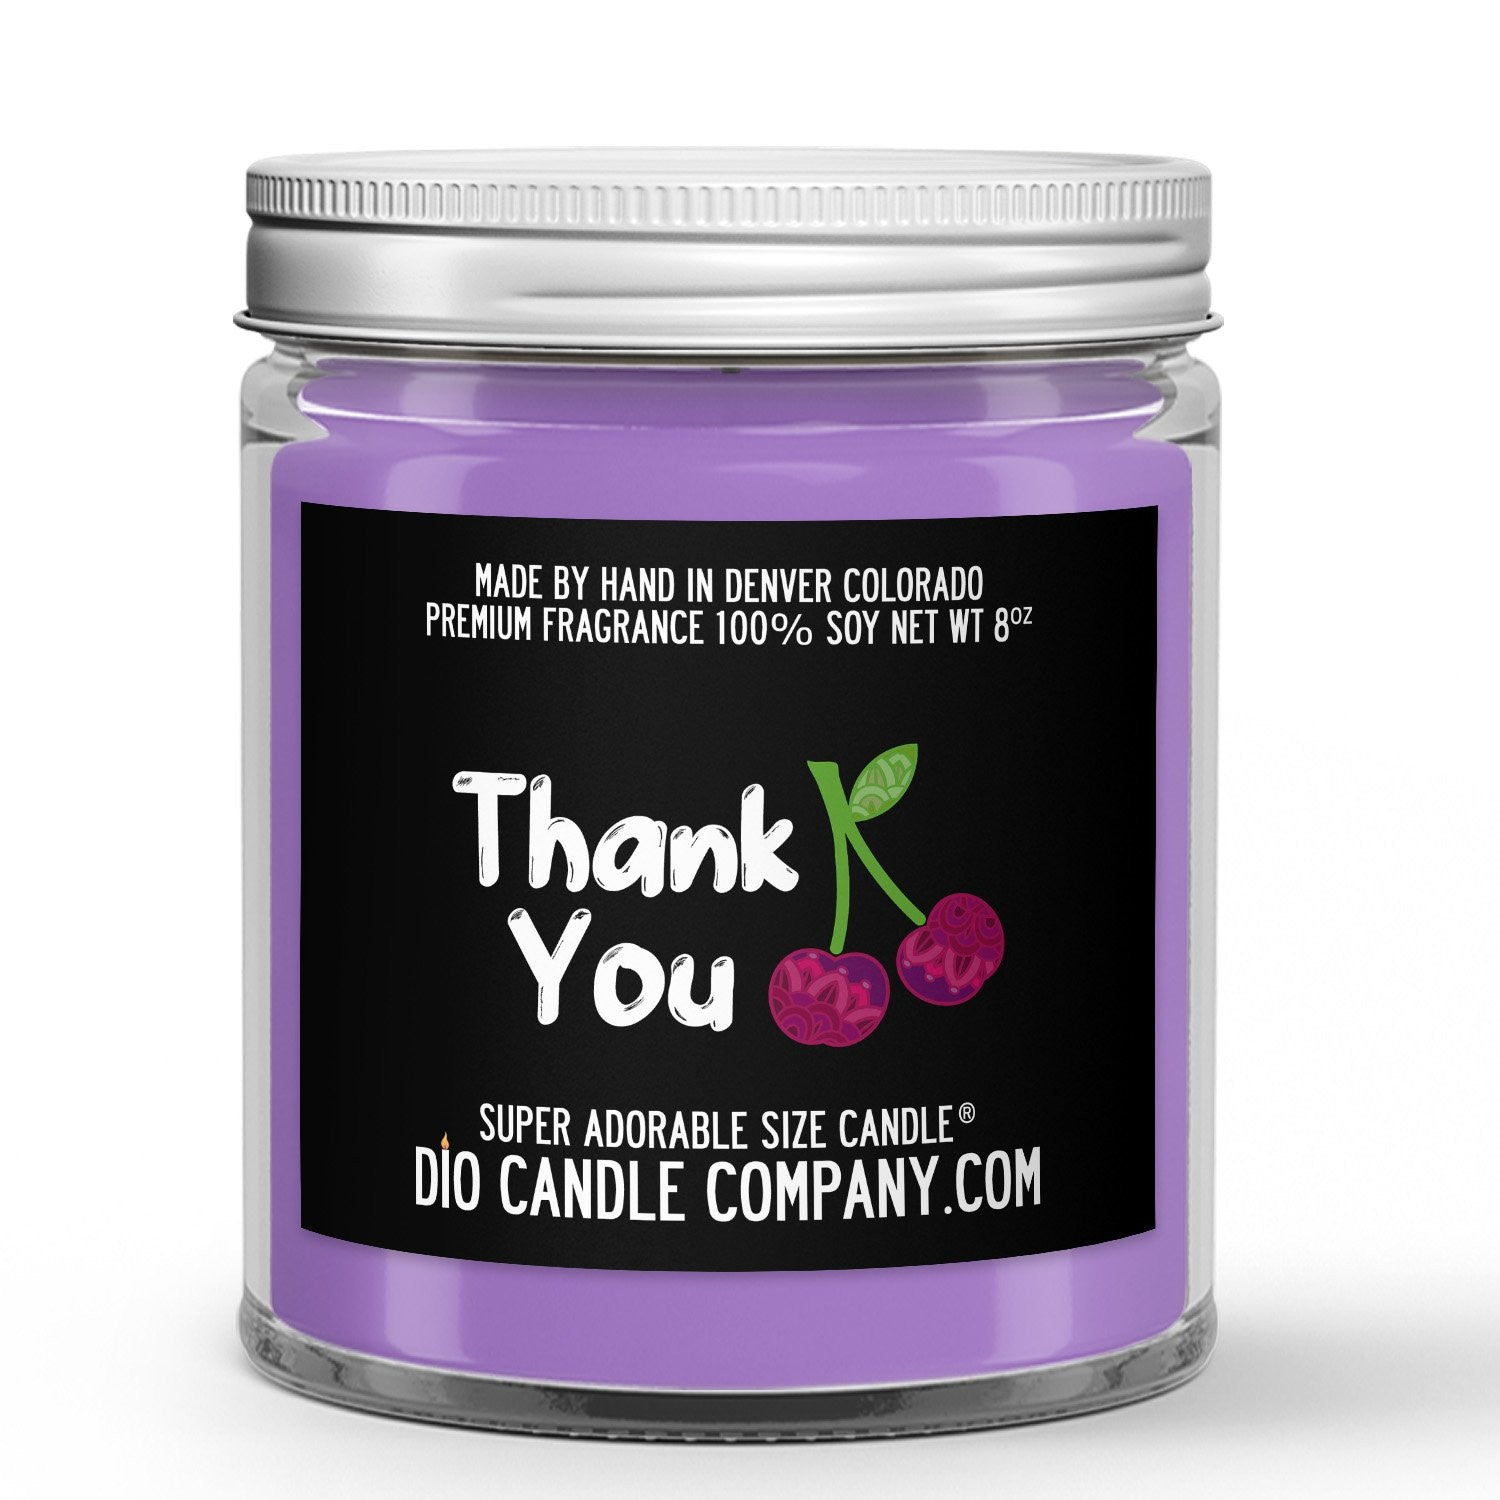 Gratitude Candle - Black Cherry - 8oz Super Adorable Size Candle® - Dio Candle Company